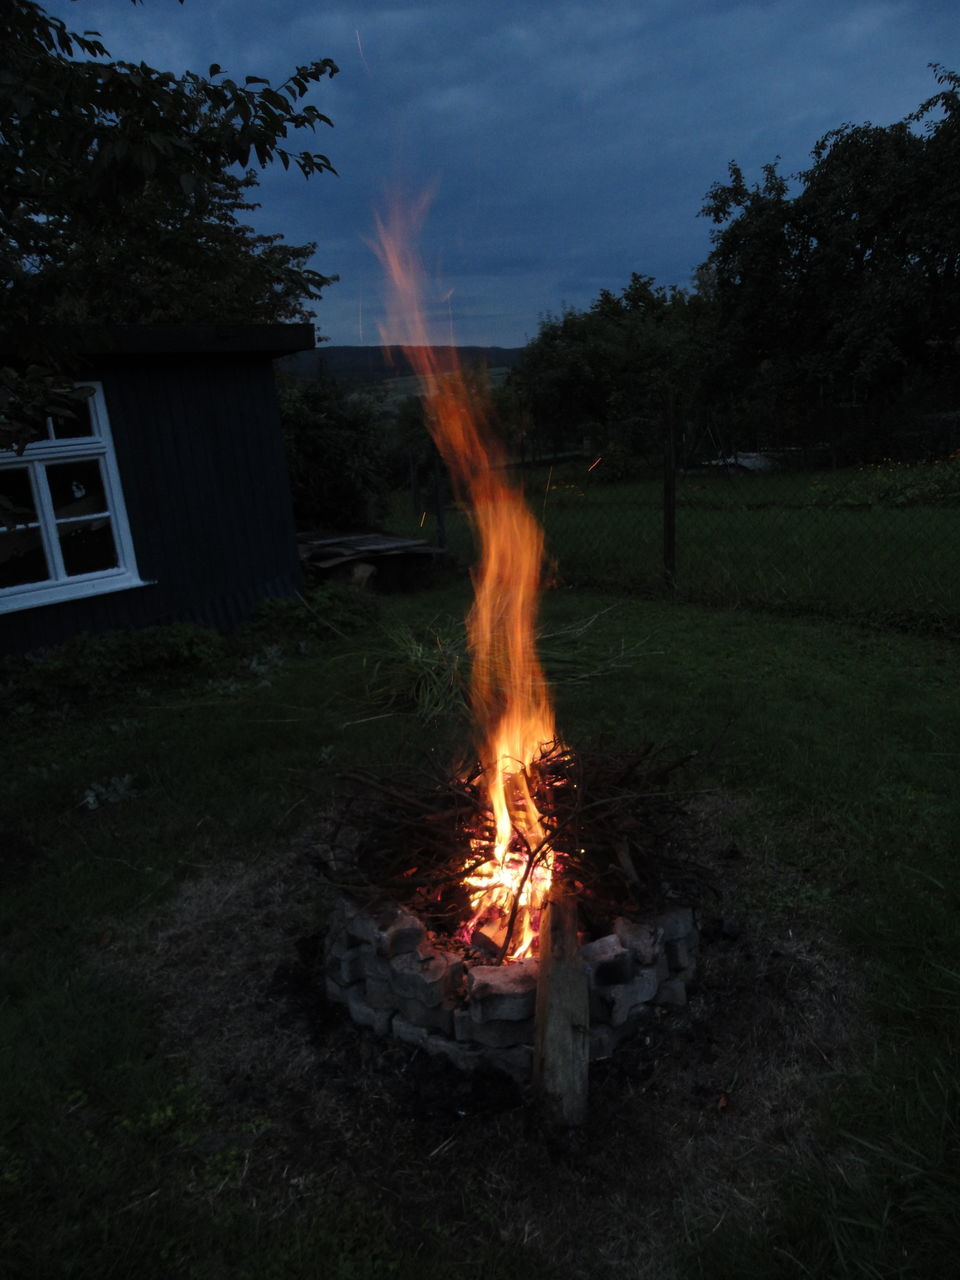 burning, flame, glowing, tree, no people, field, heat - temperature, smoke - physical structure, outdoors, bonfire, night, nature, sky, grass